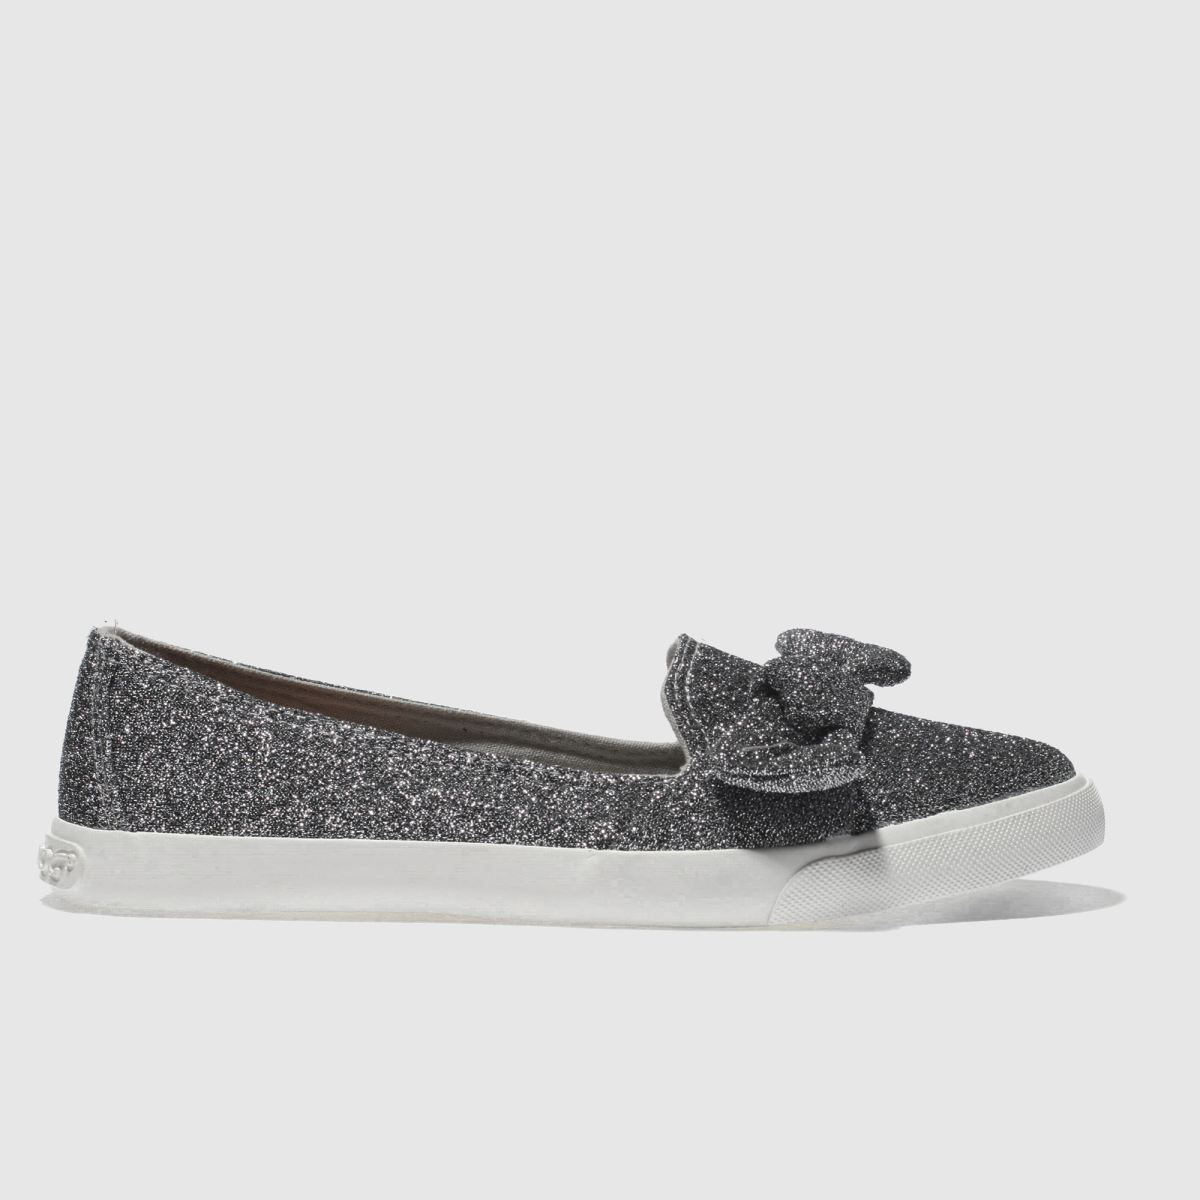 Rocket Dog Silver Clarita Flat Shoes